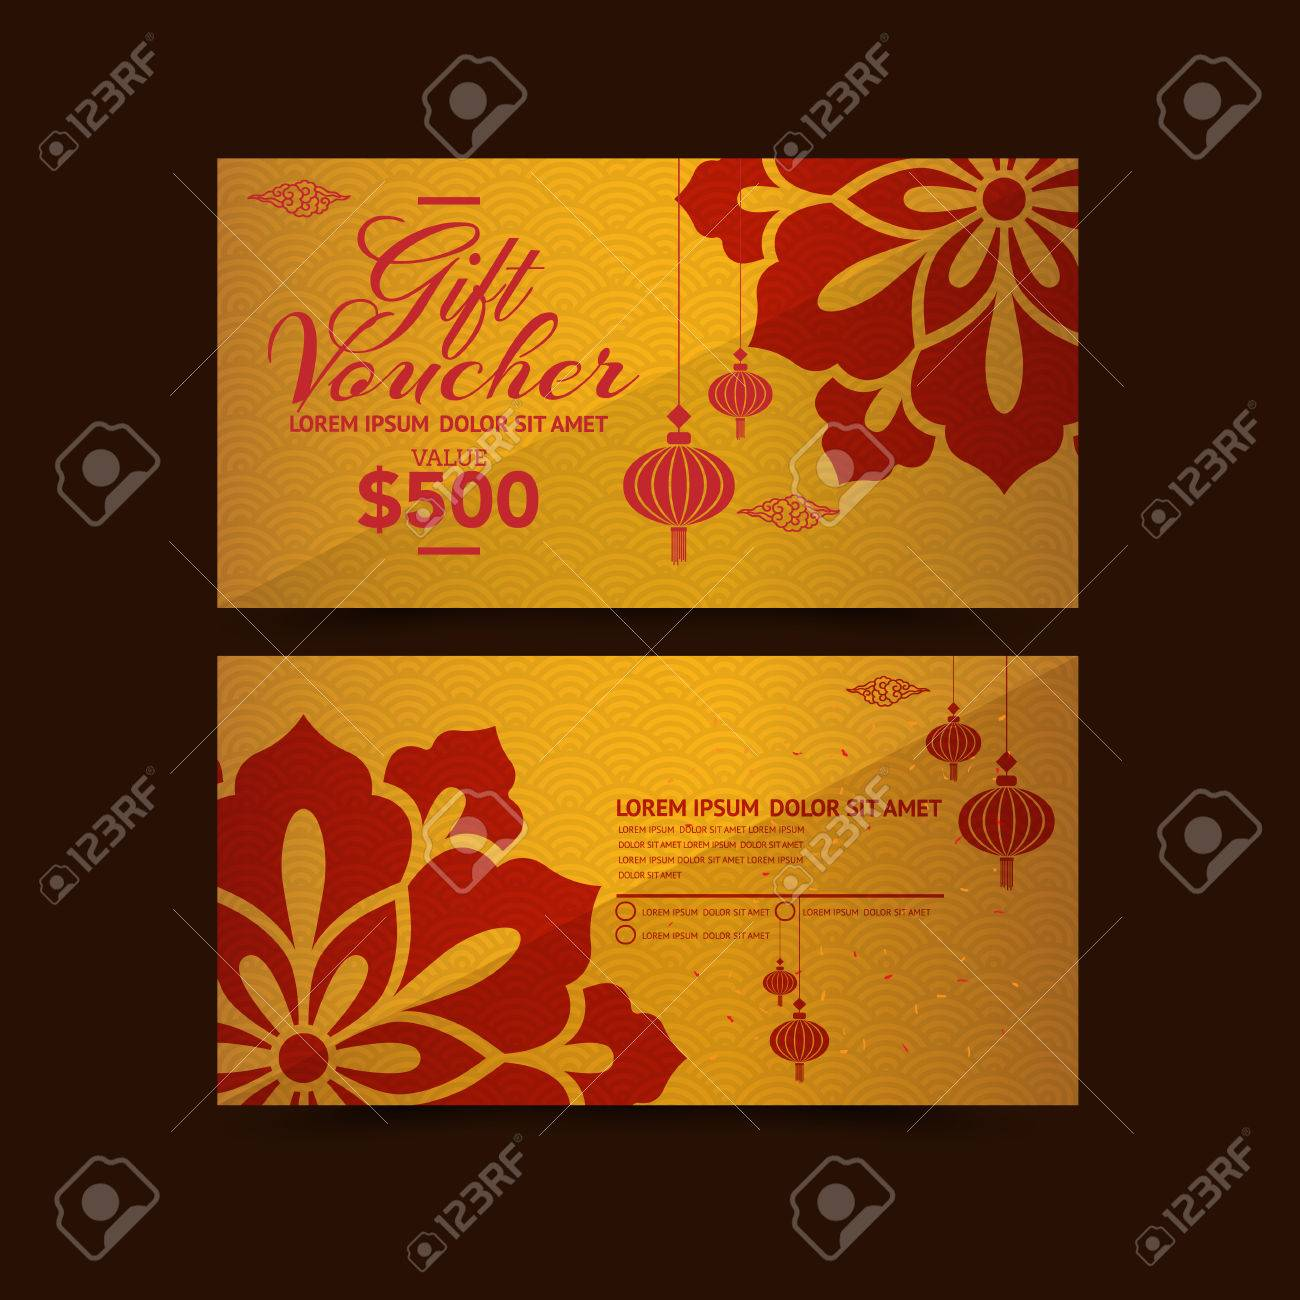 Chinese new year gift voucher design template royalty free chinese new year gift voucher design template stock vector 50570851 yelopaper Gallery